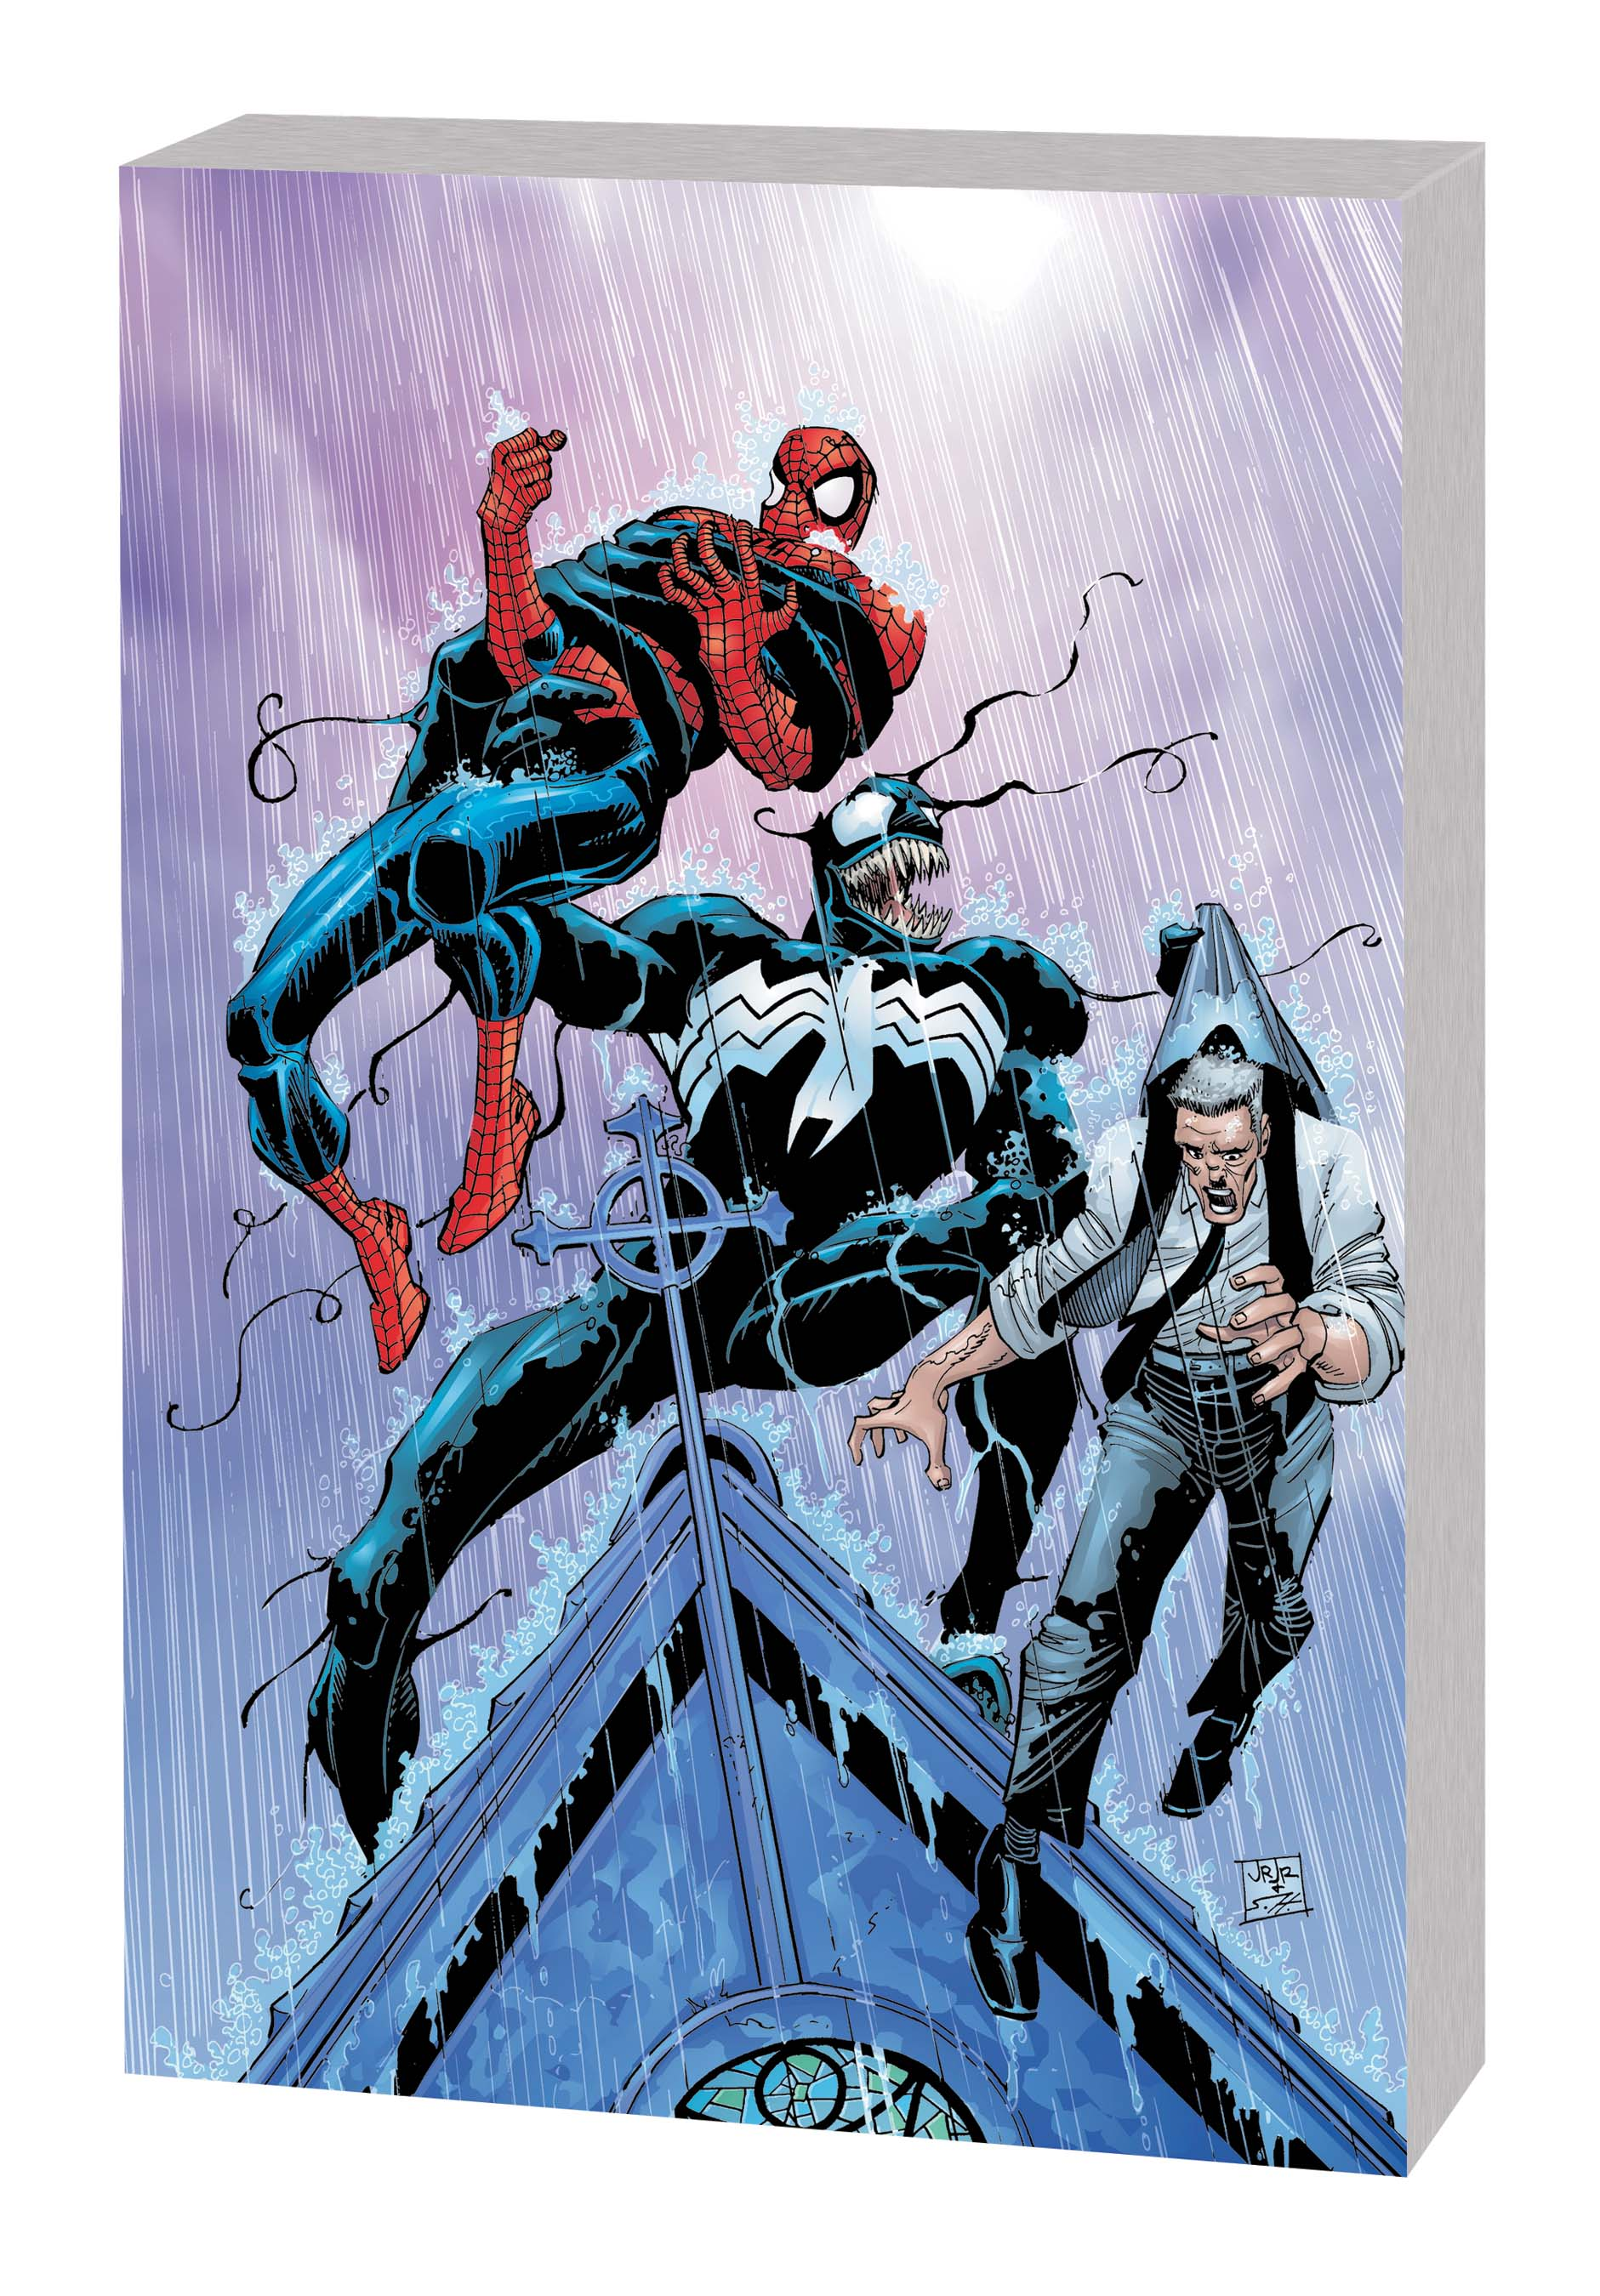 SPIDER-MAN: THE NEXT CHAPTER VOL. 2 TPB